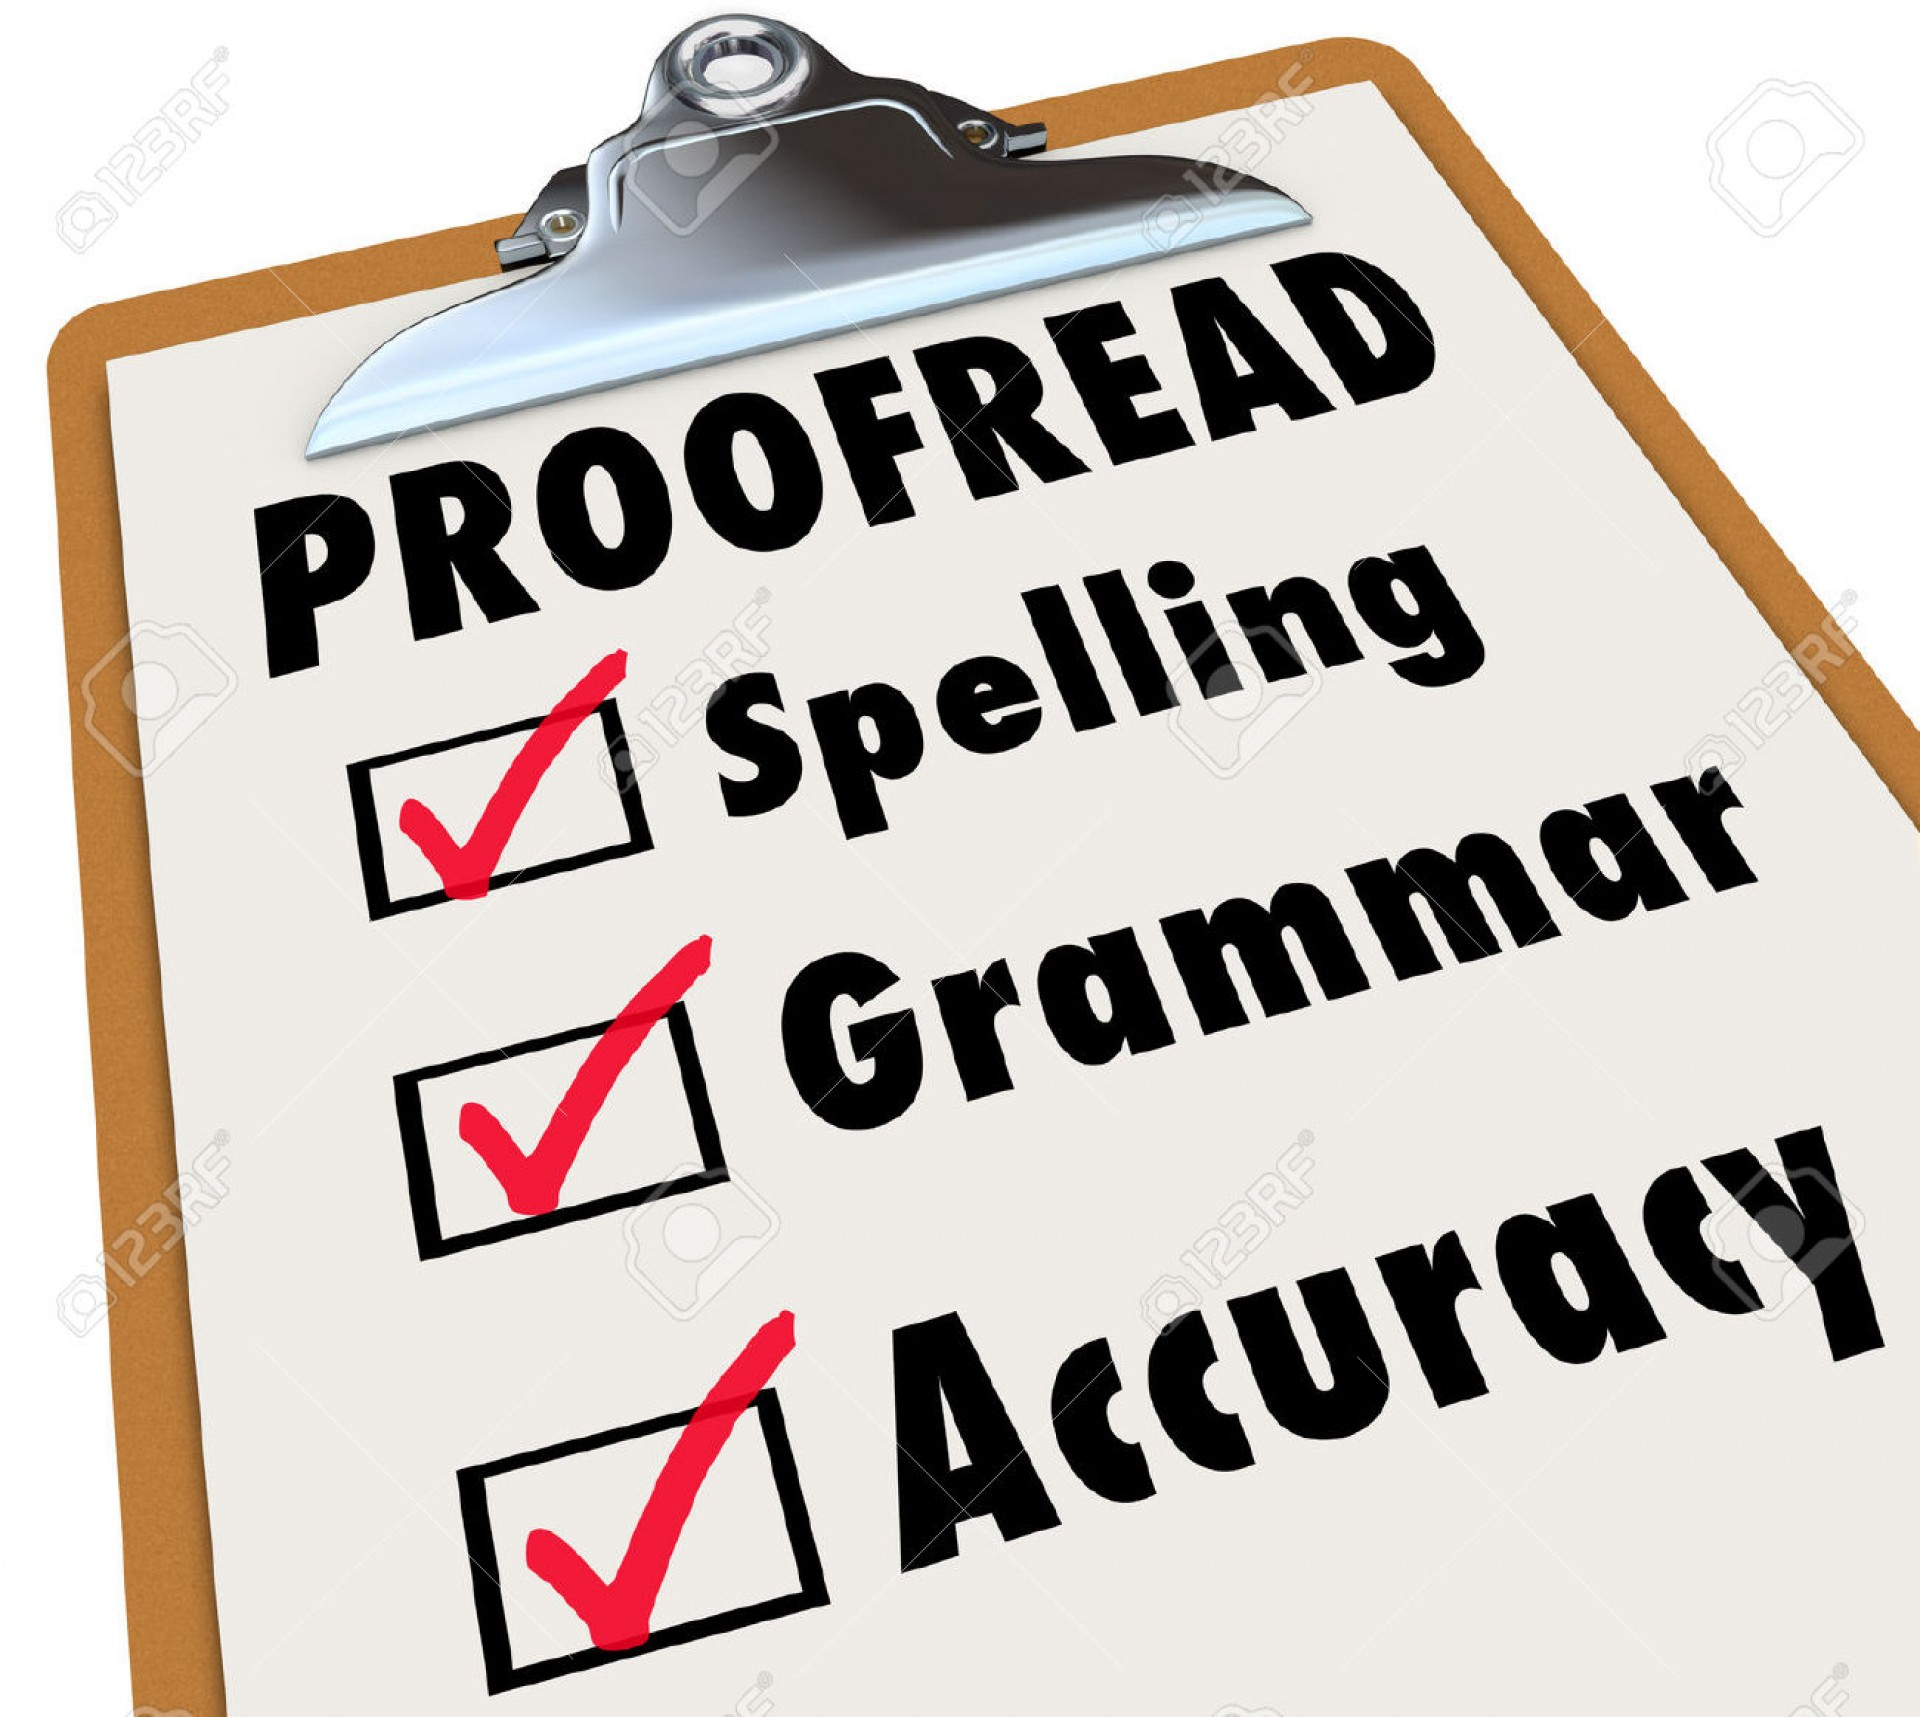 004 Essay Proofreader Spanish Proof Checklist And Checked Boxes Next The Words Spelling Grammar Accuracy Things Stock Photo Proofreading Exercise Online Correction Free Editing Sensational Persuasive College Service 1920